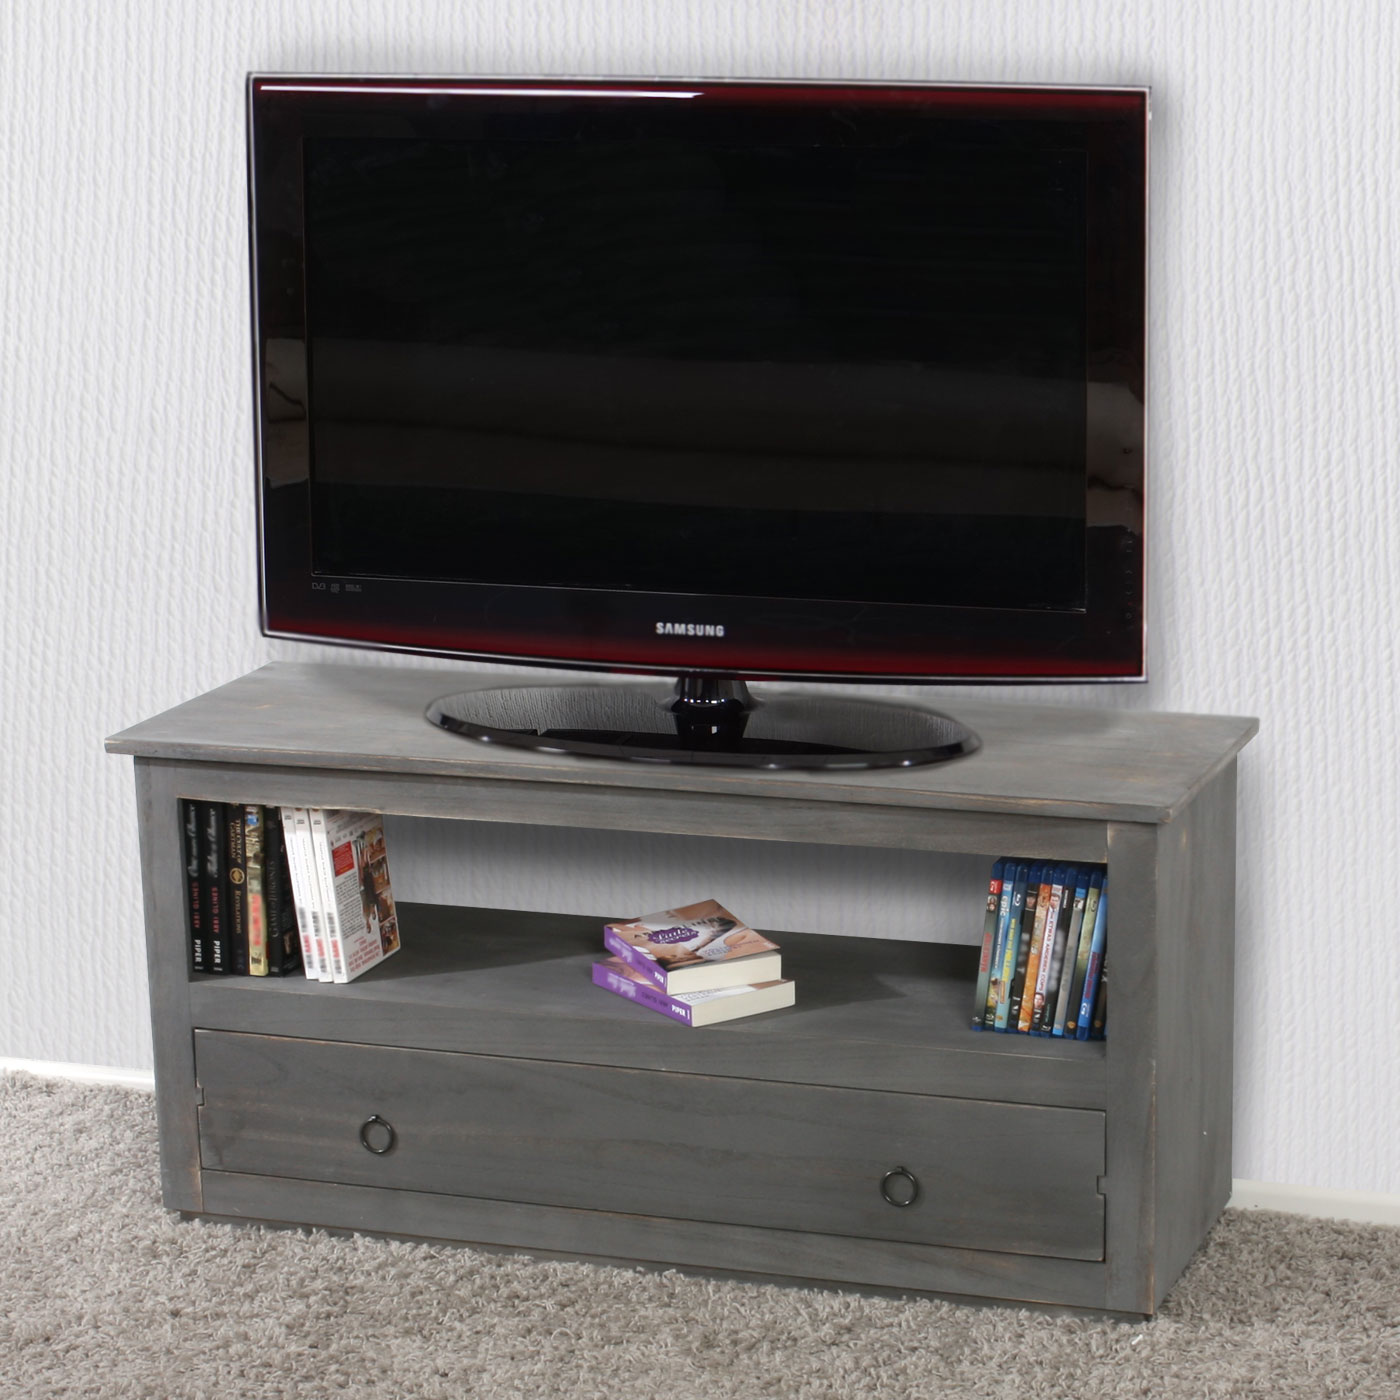 tv rack fernsehtisch lowboard tv regal shabby look vintage braun wei grau ebay. Black Bedroom Furniture Sets. Home Design Ideas